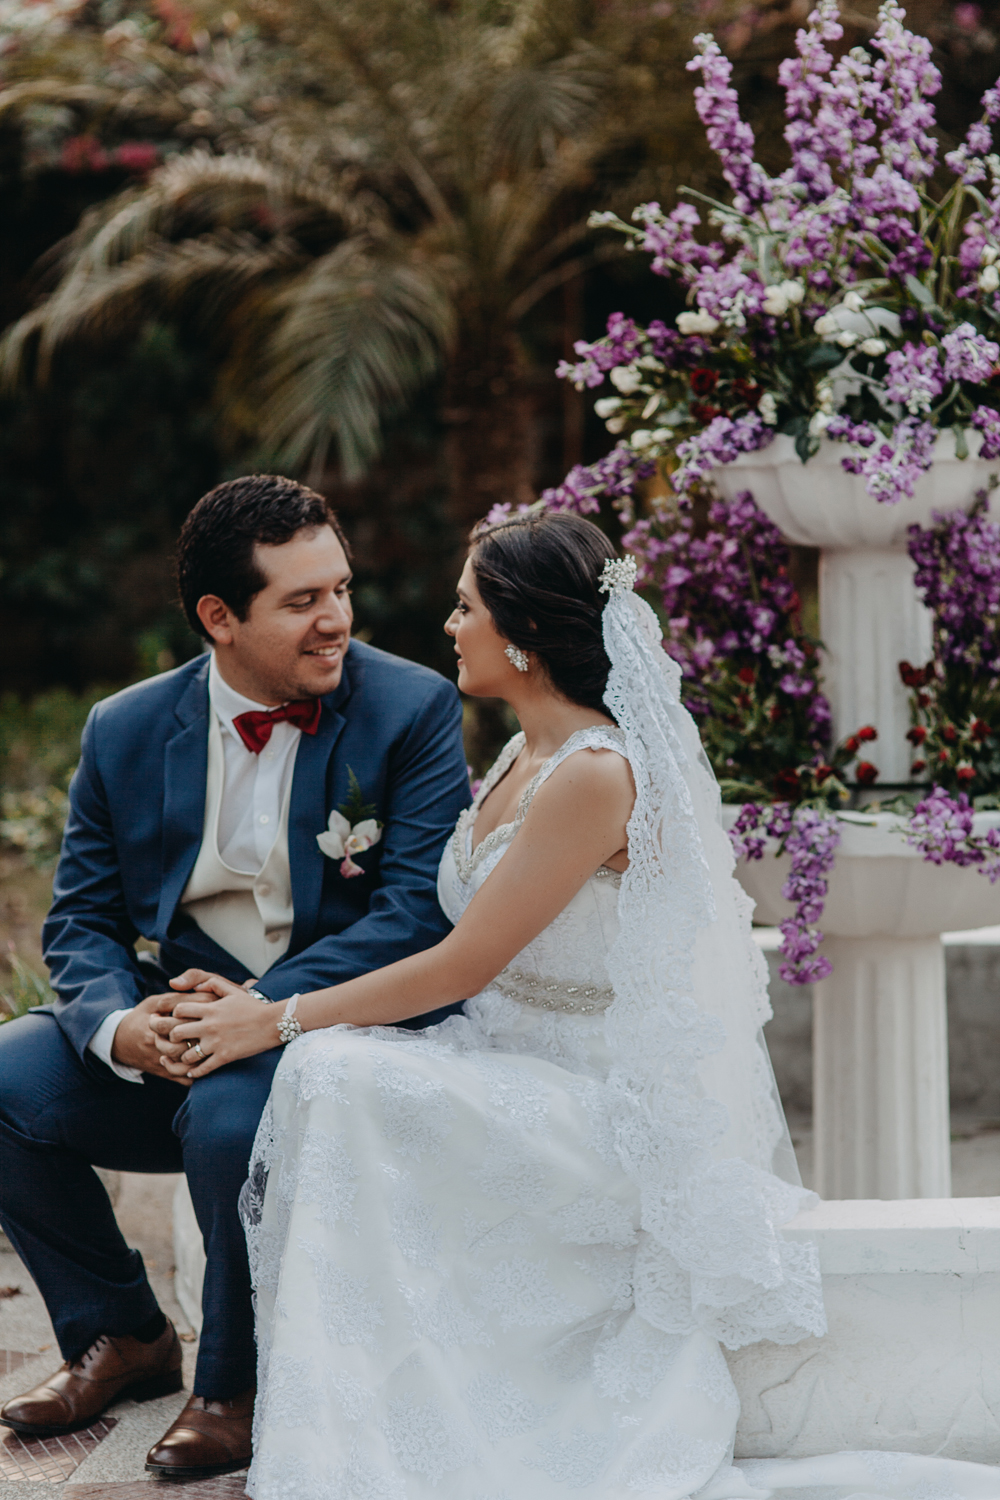 Michelle-Agurto-Fotografia-Bodas-Ecuador-Destination-Wedding-Photographer-Cristi-Luis-113.JPG